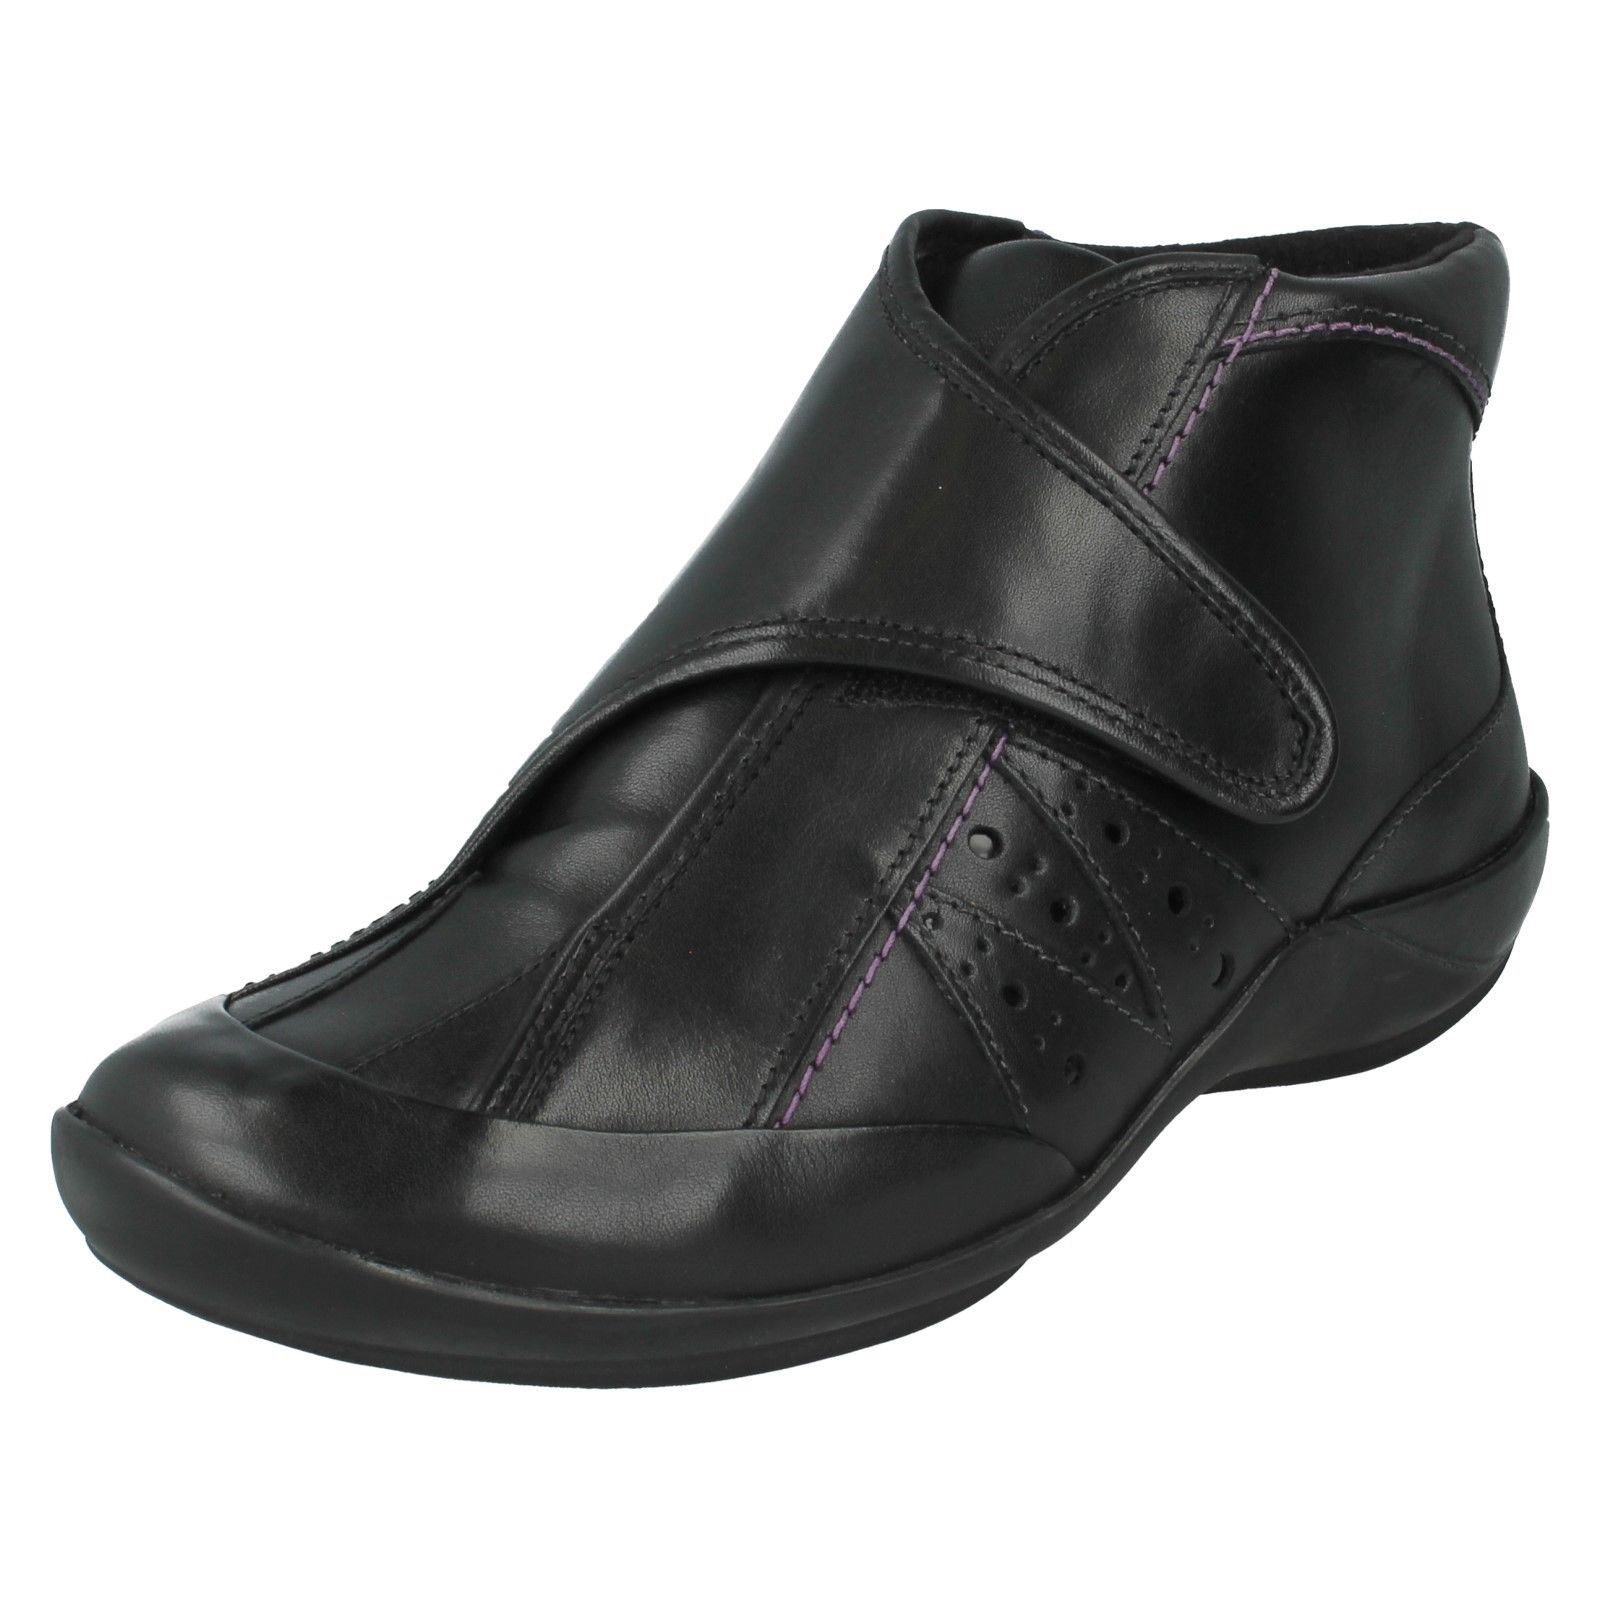 Ladies K by Clarks Wide Fitting Ankle Boots Mizzle Fine